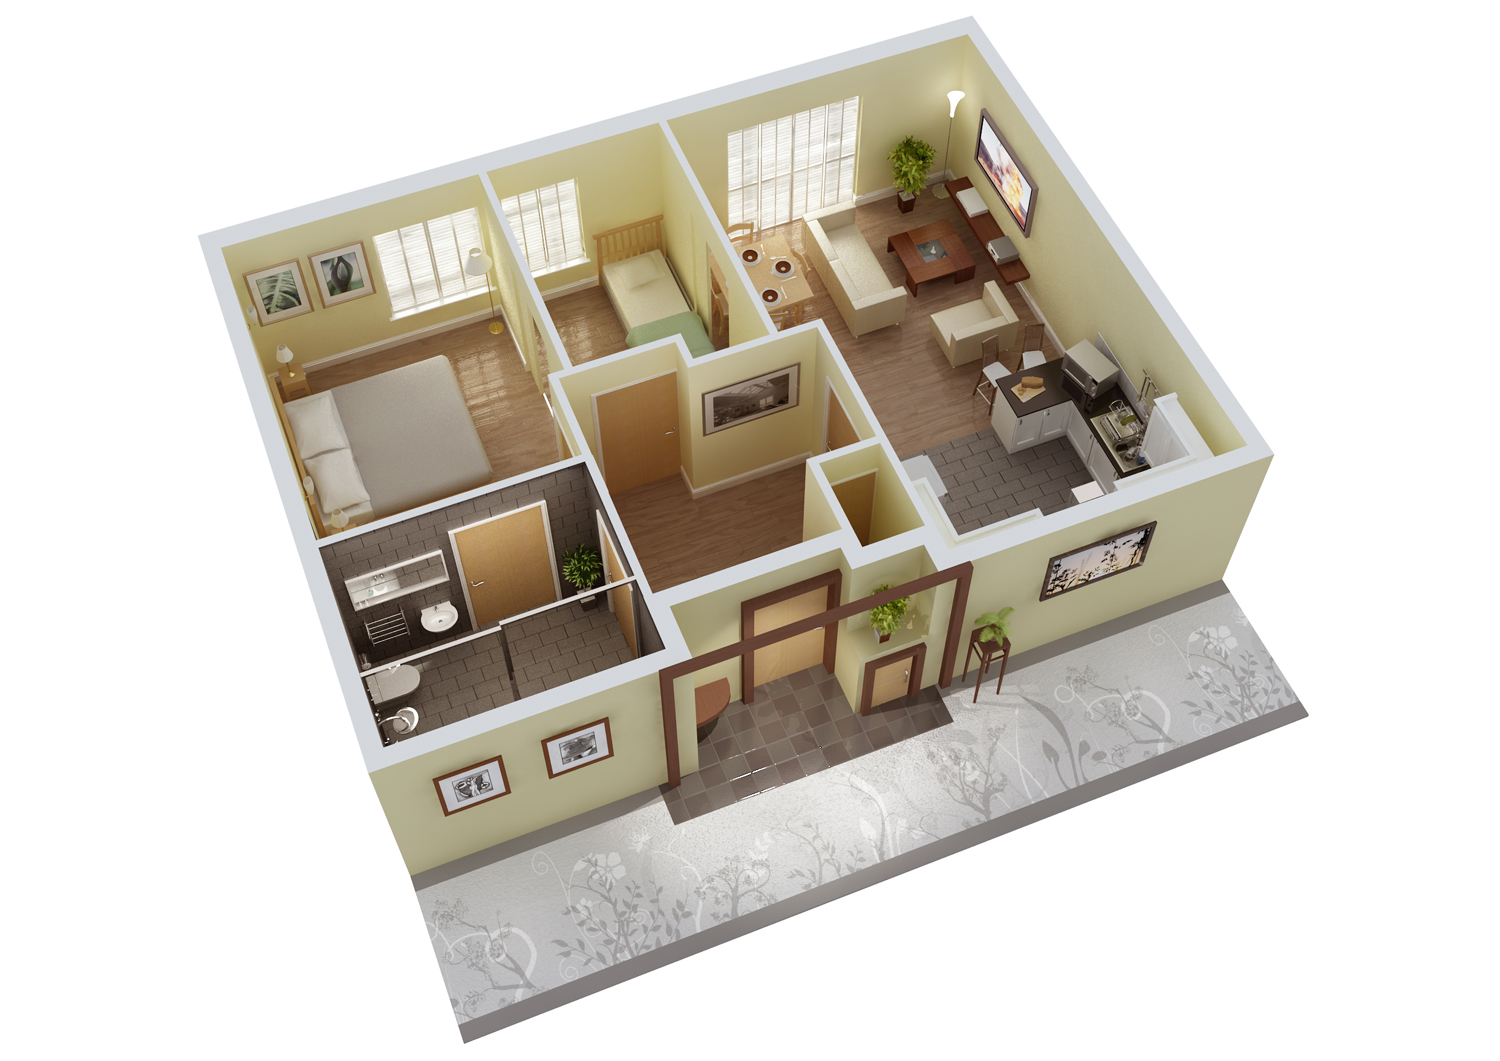 Mathematics resources project 3d floor plan for Simple house floor plans